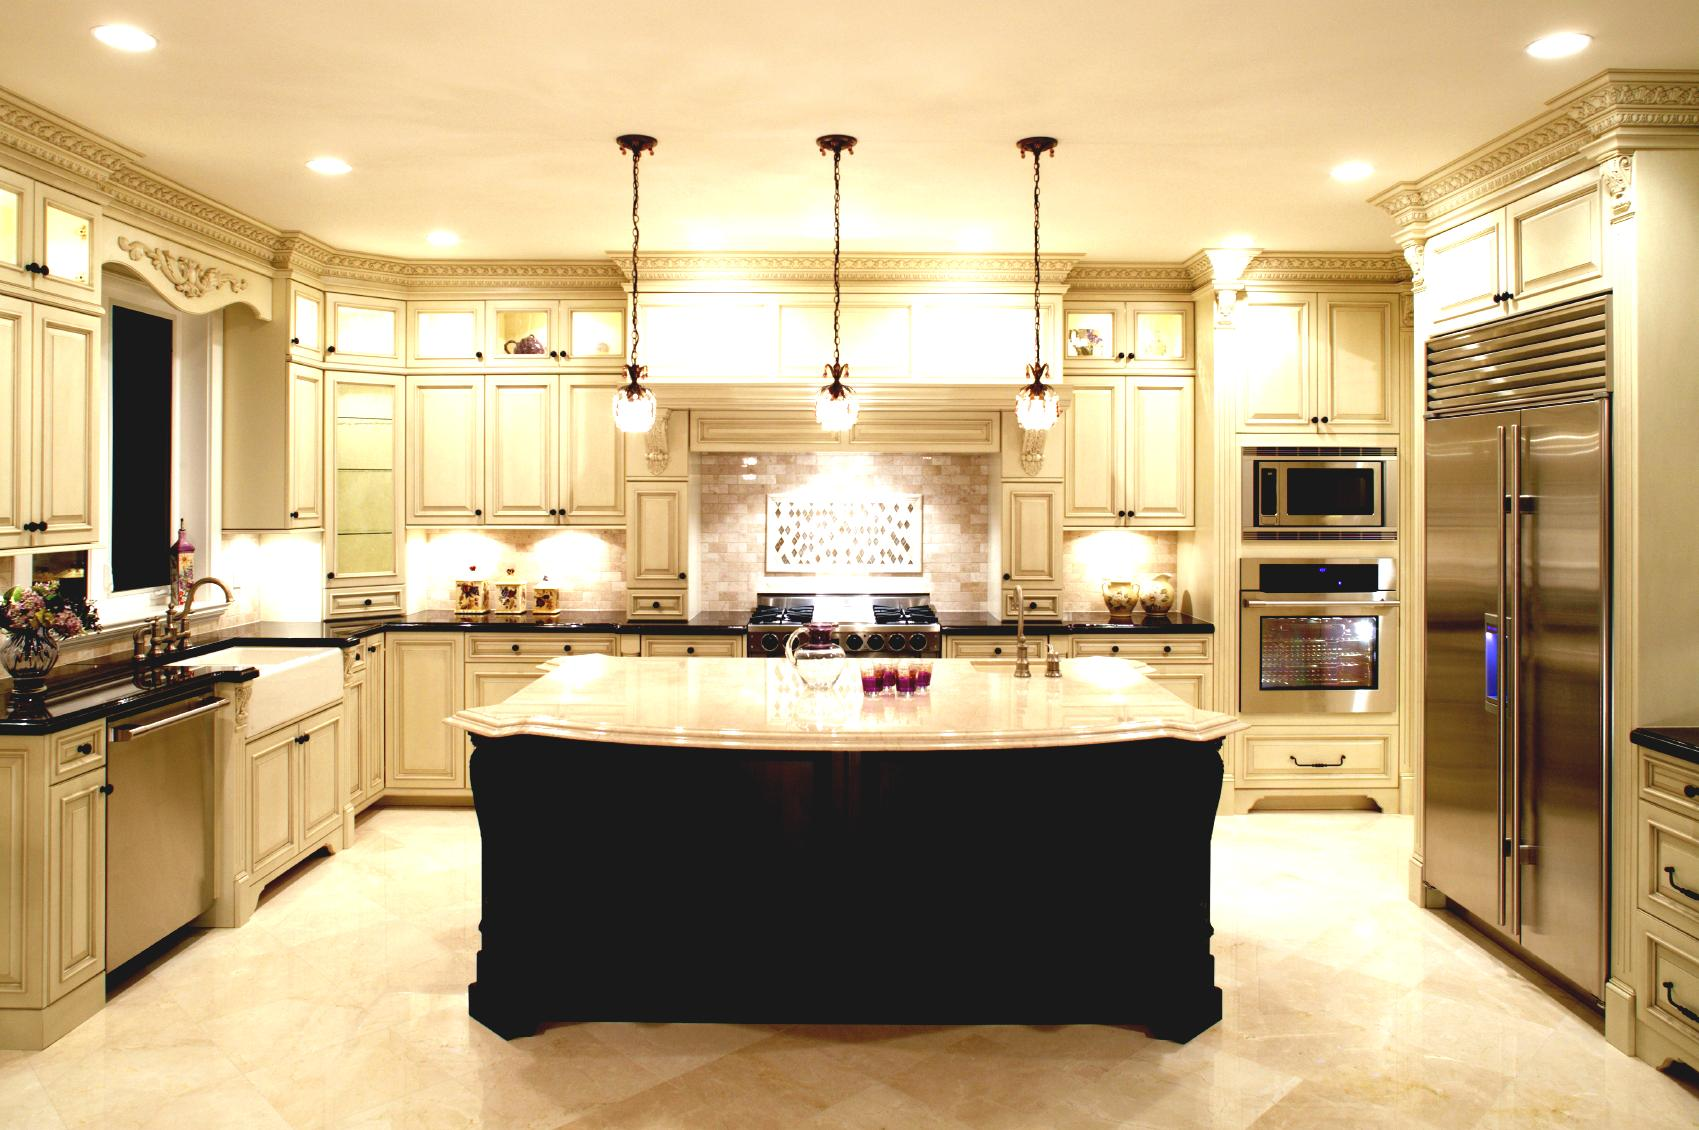 U Shaped Kitchen With Double Island